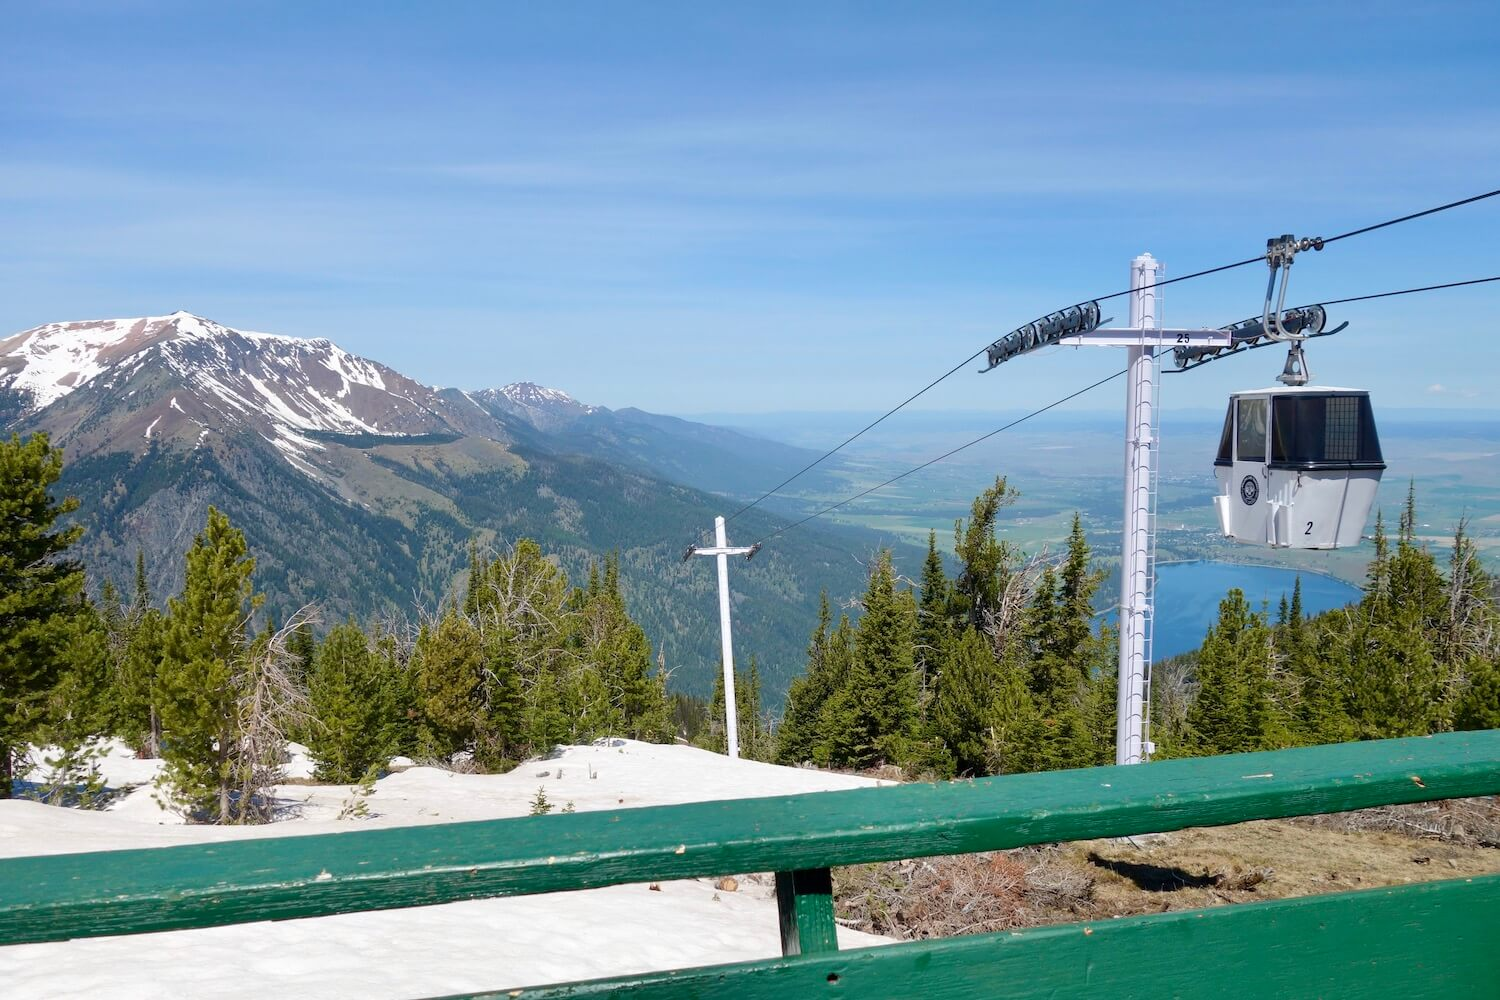 The Wallowa Lake Tramway ascends 3600 feet in about fifteen minutes, and this photo is taken from the green railing of the Summit Pub at the top of the mountain. Crescent shaped Wallowa Lake is in the background as well as the town of Joseph, Oregon. A gondola makes its way to the final summit.